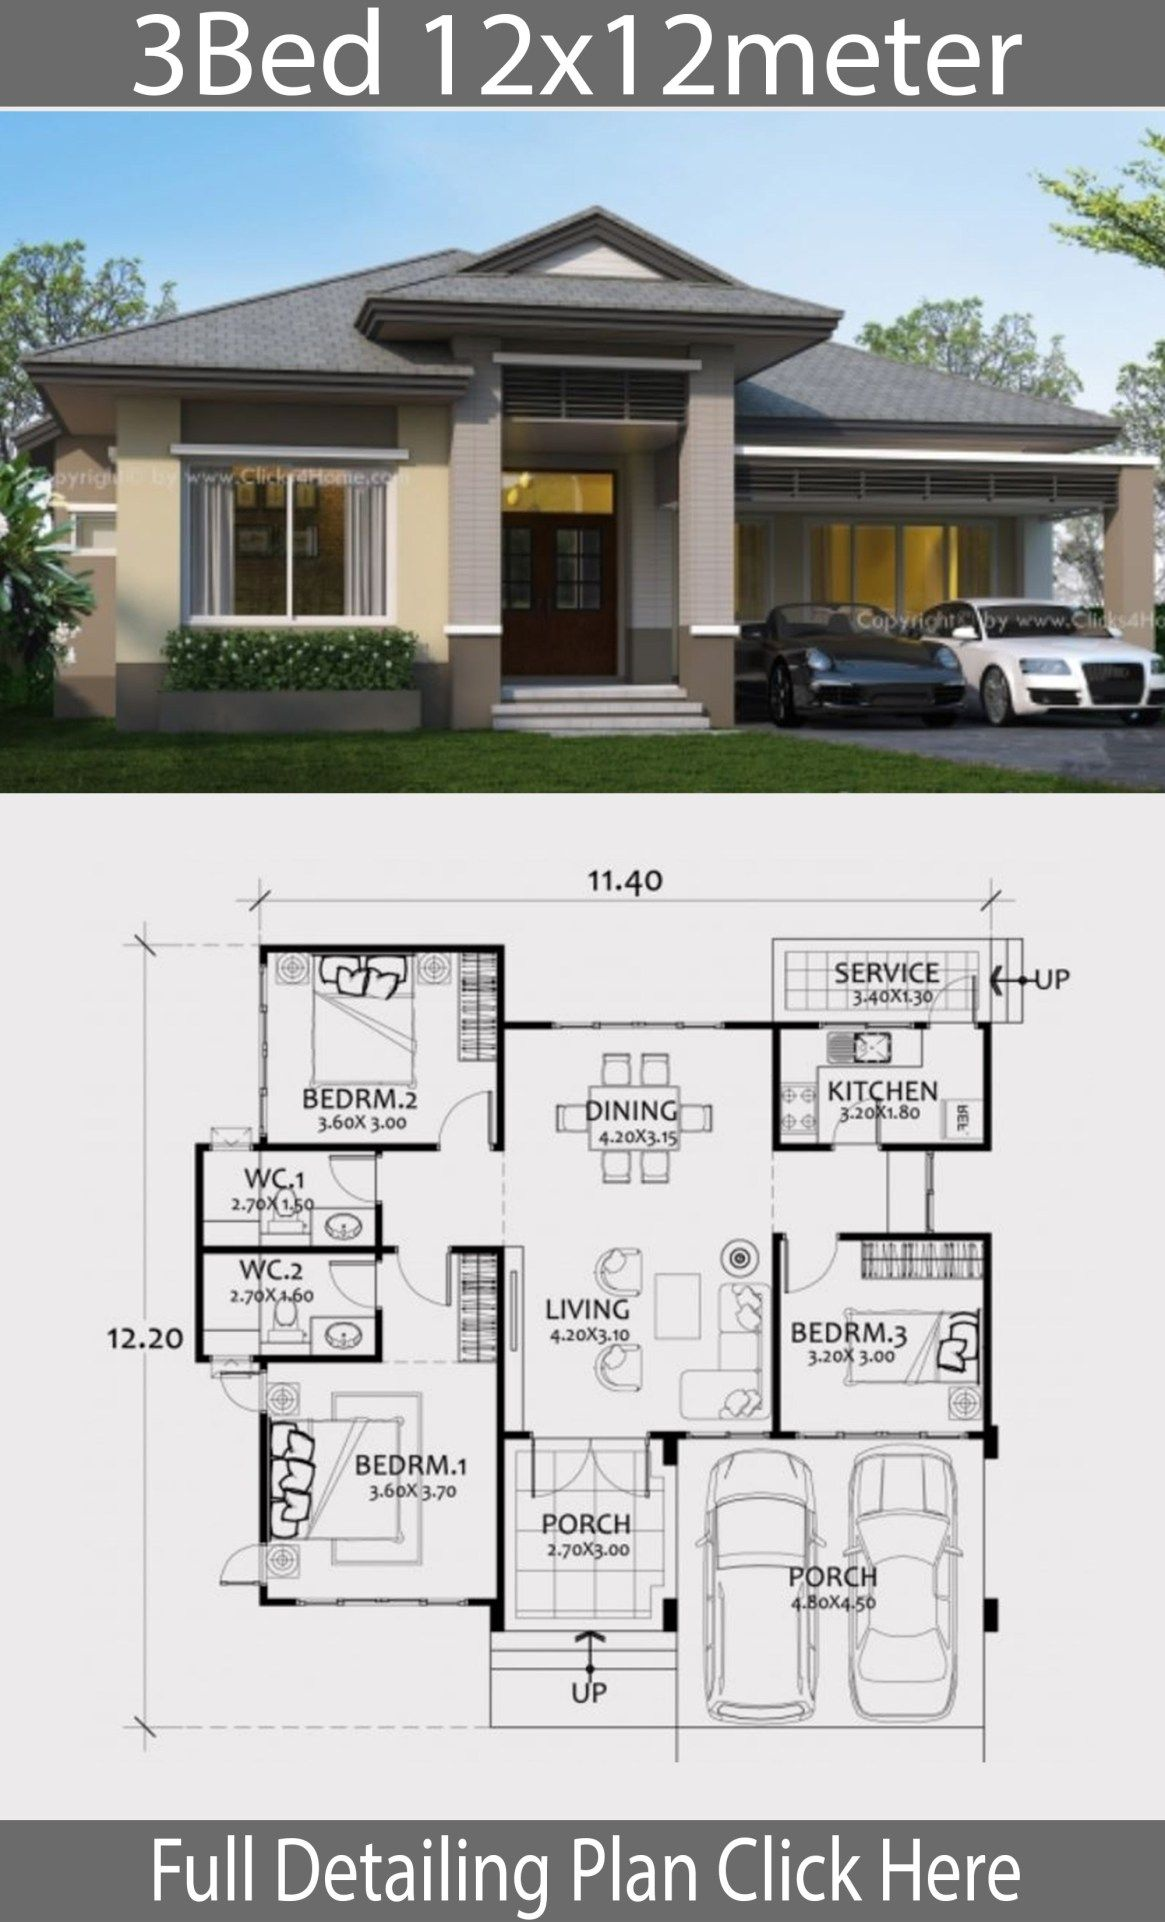 Home design plan 12x12m with 3 Bedrooms (With images